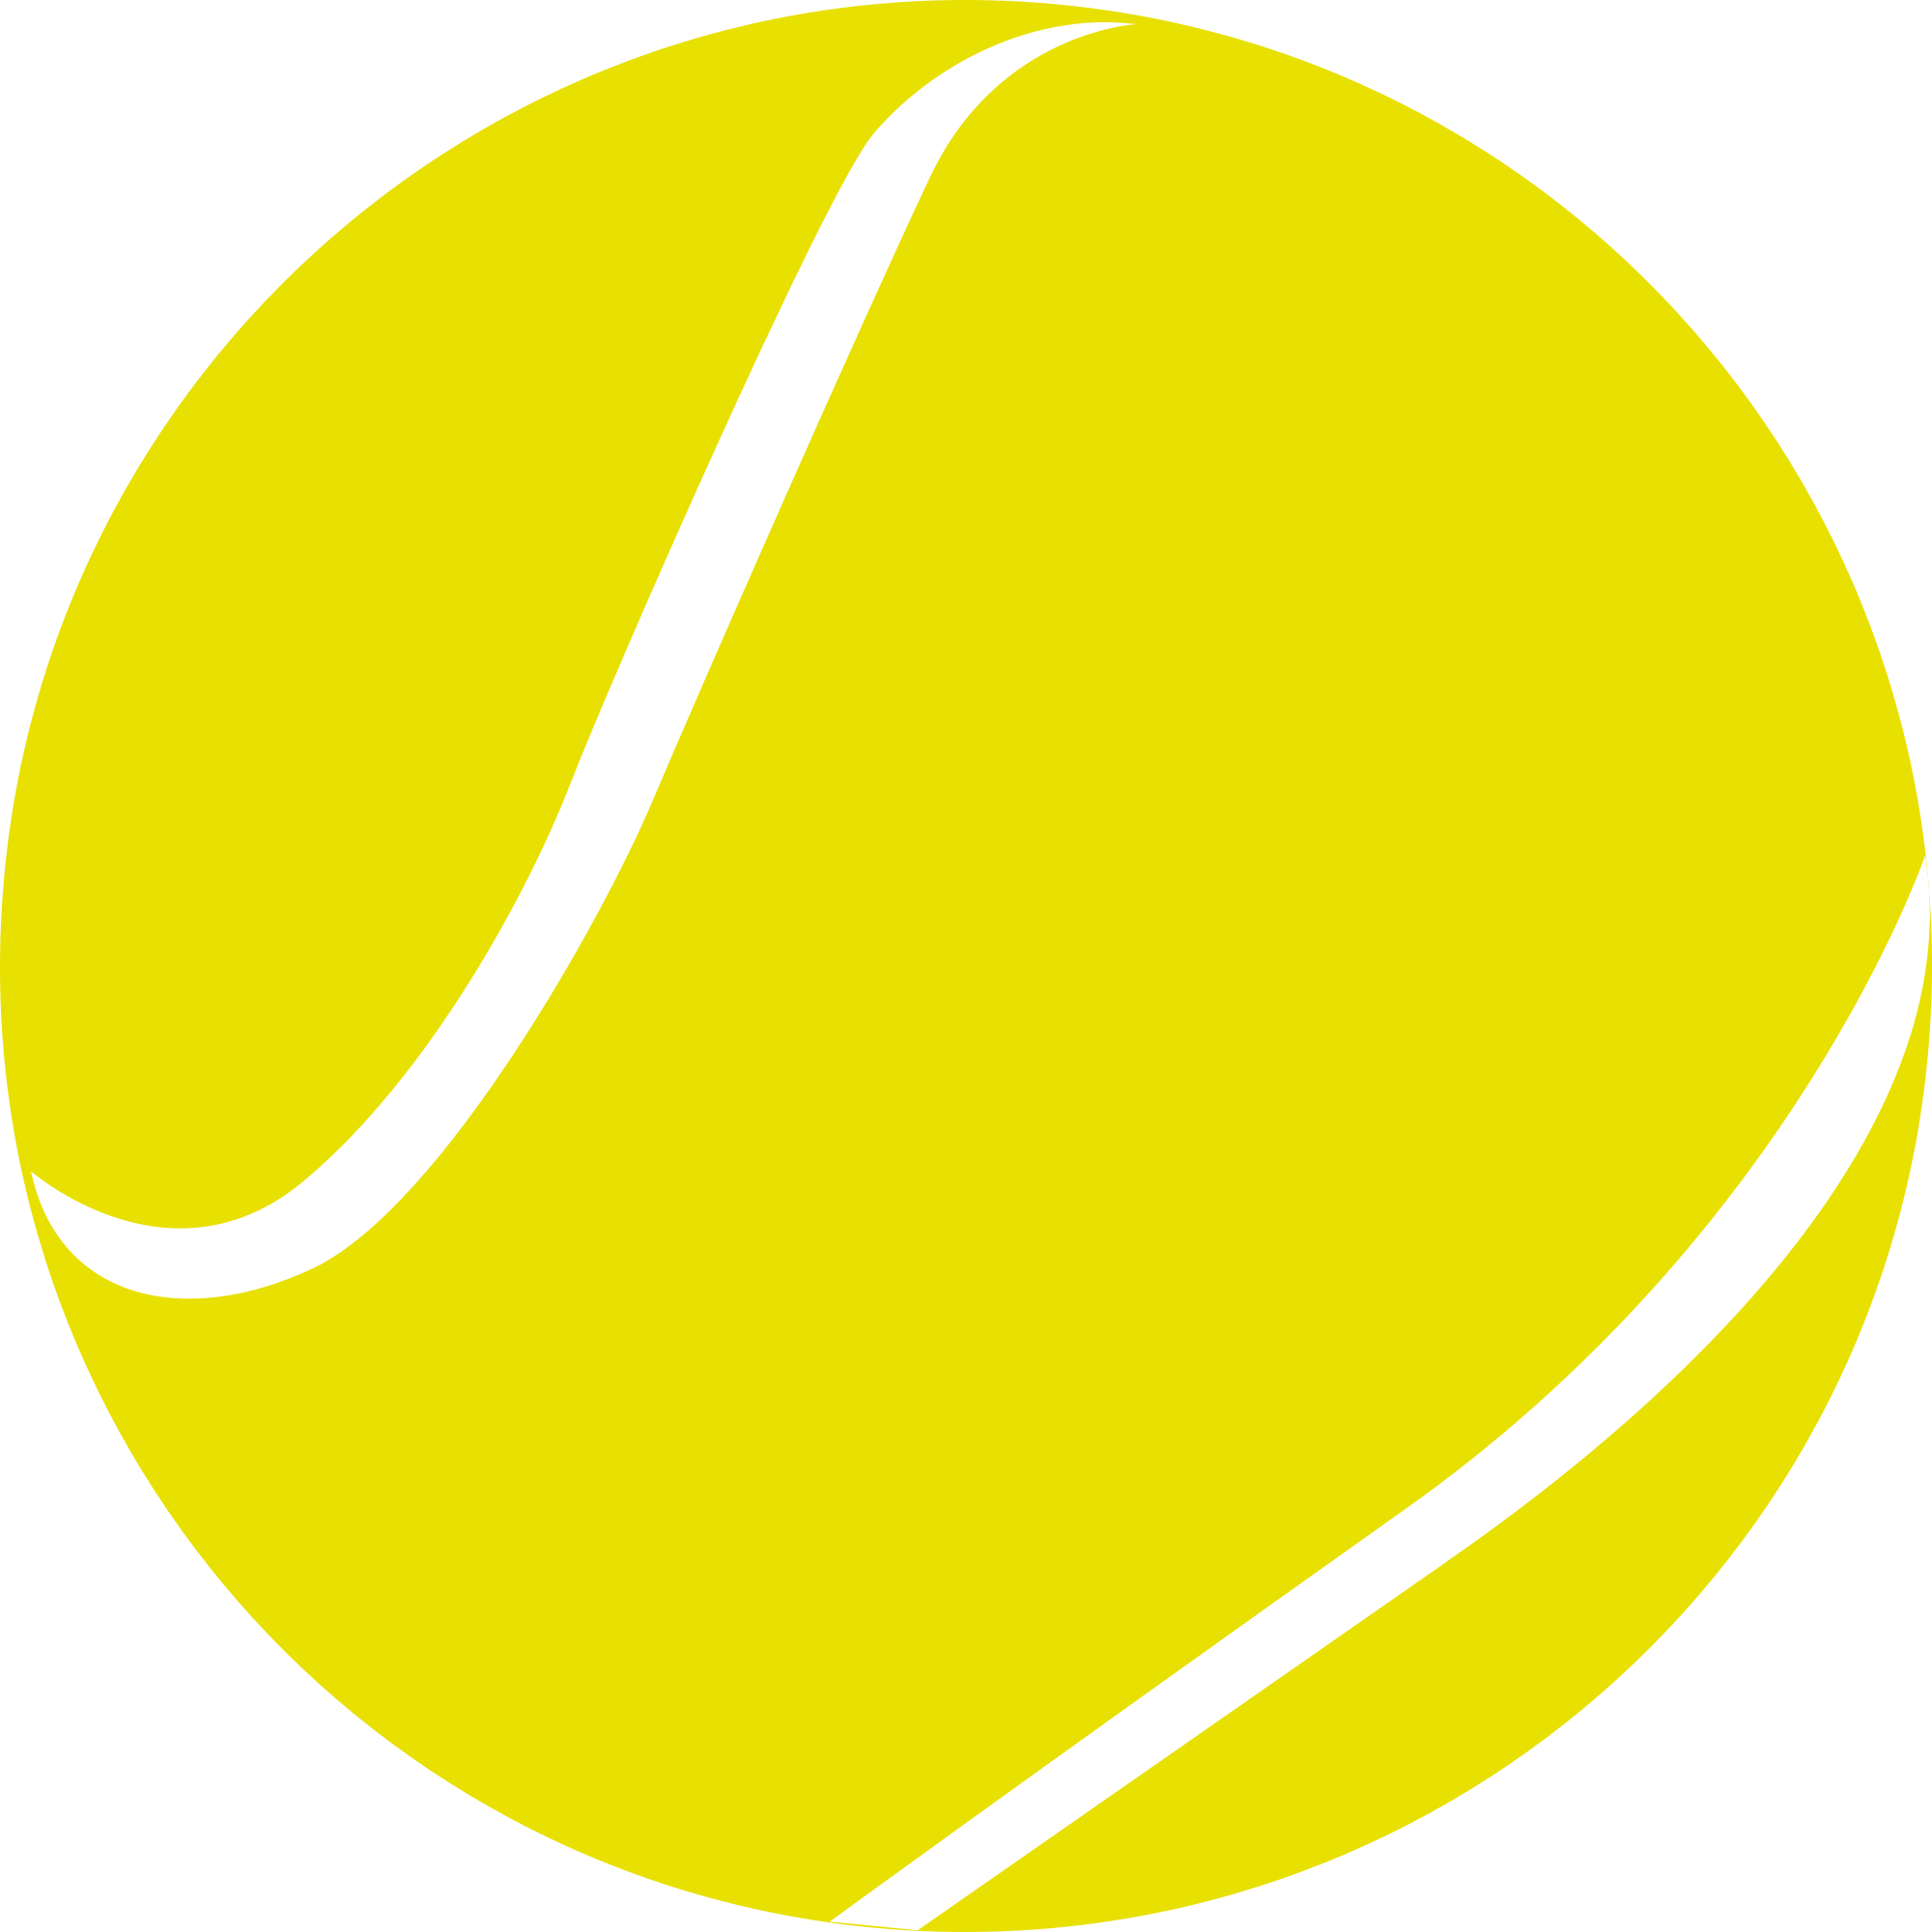 Tennis Ball PNG Image Tennis Ball PNG Image image #1806 - Tennis PNG